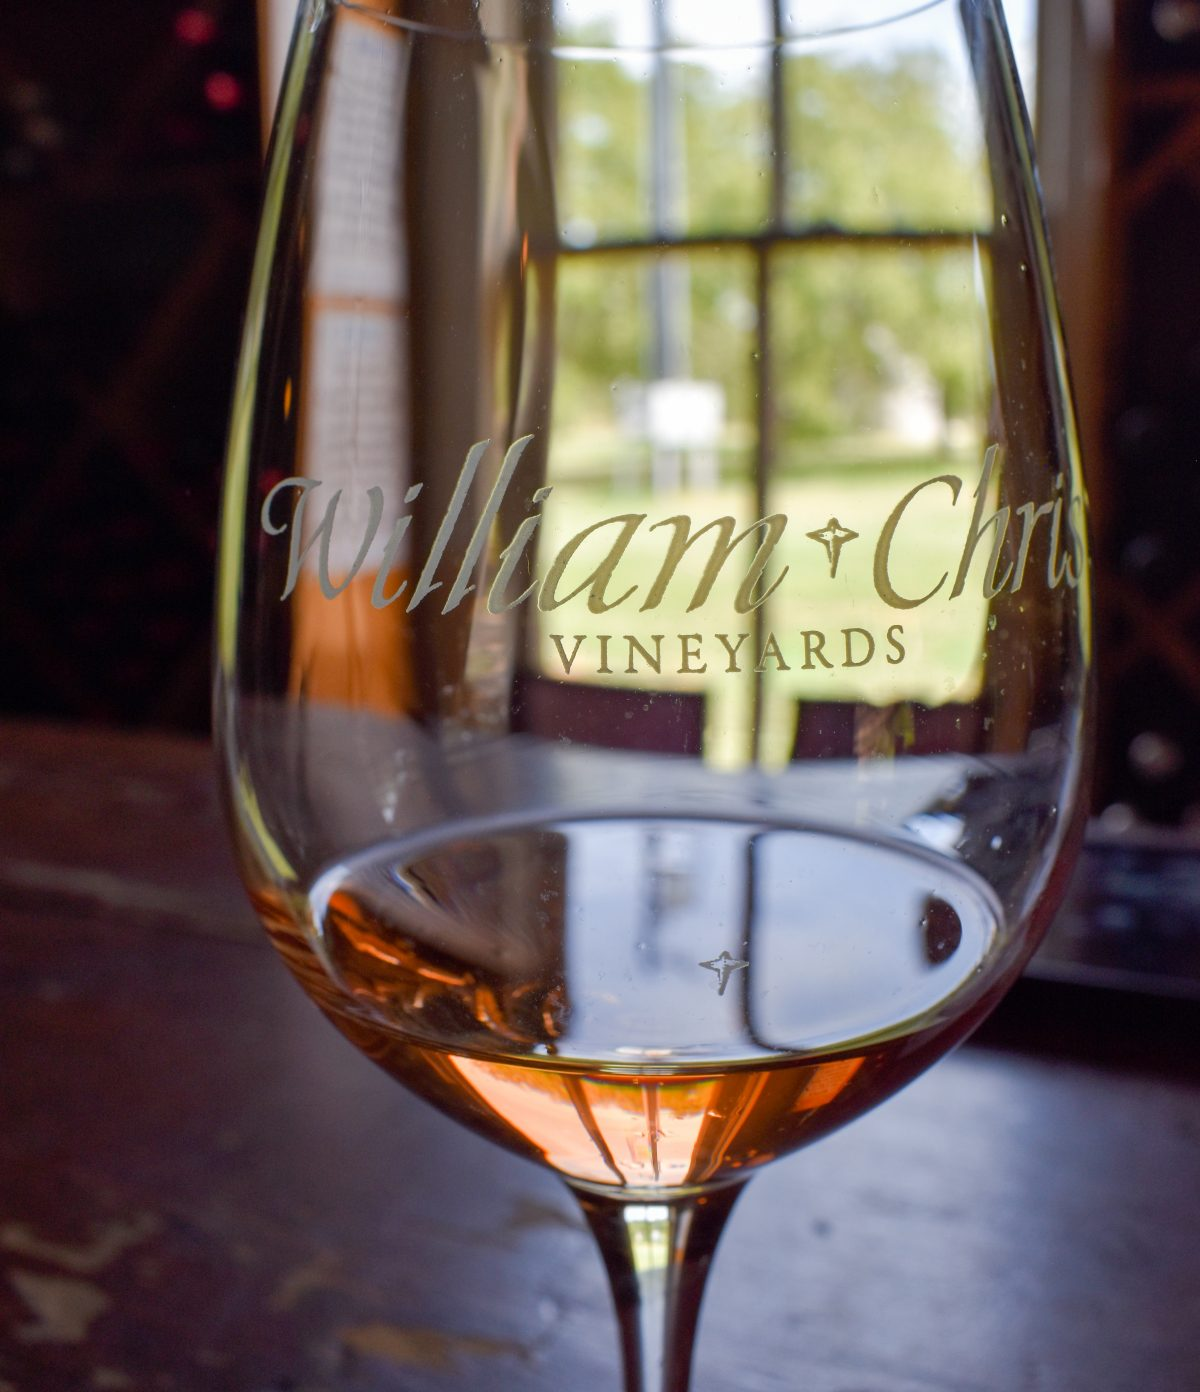 Wine Tasting at William Chris Vineyards